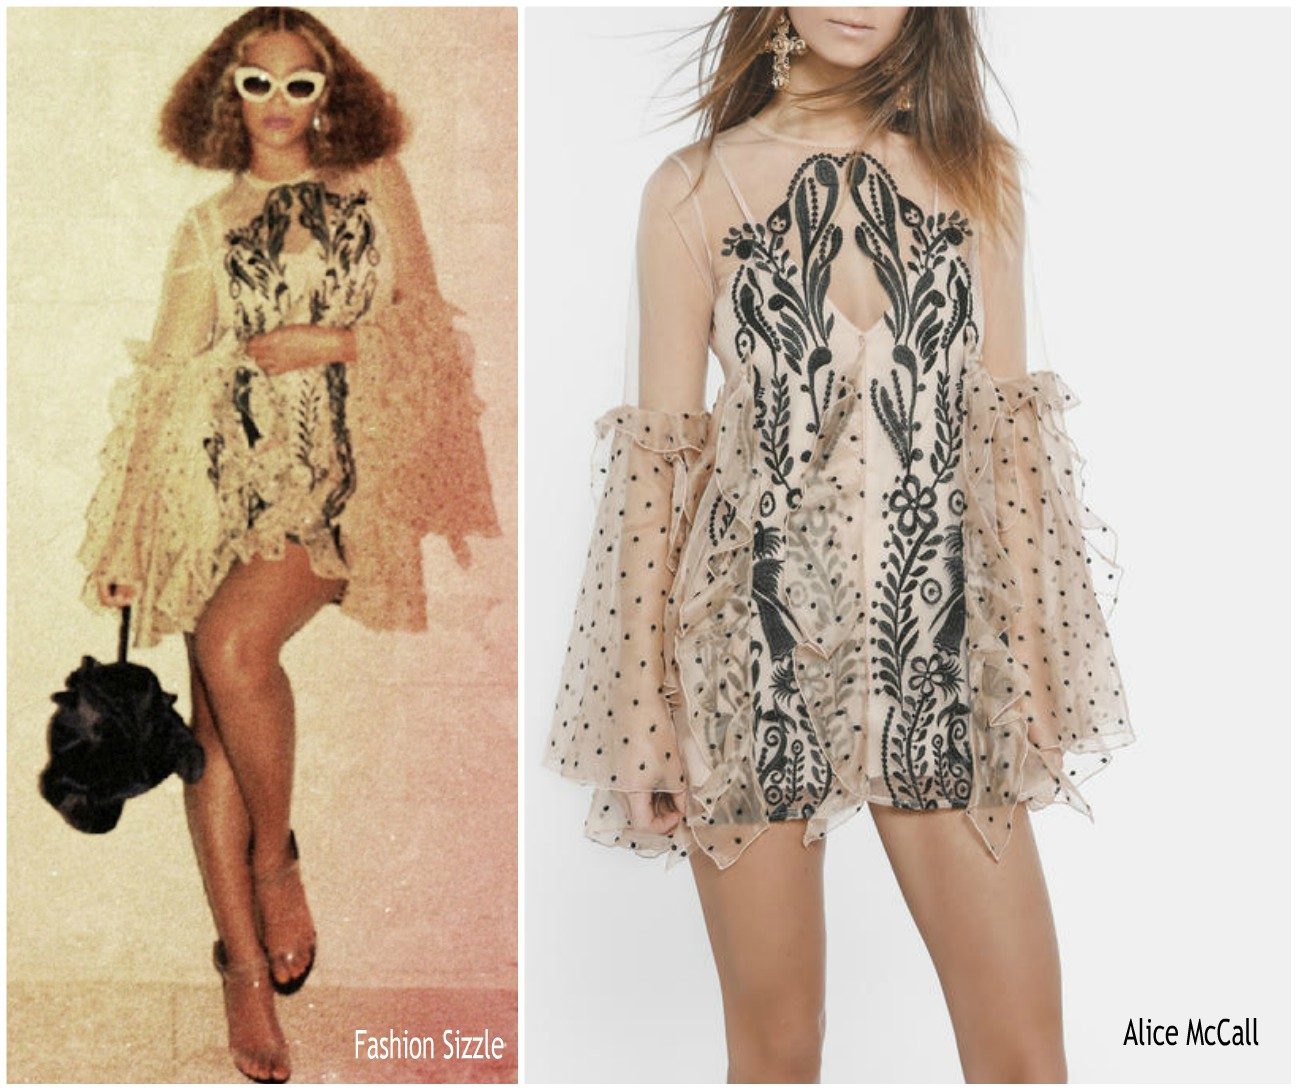 beyonce-in-alice-mccall-out-in-miami